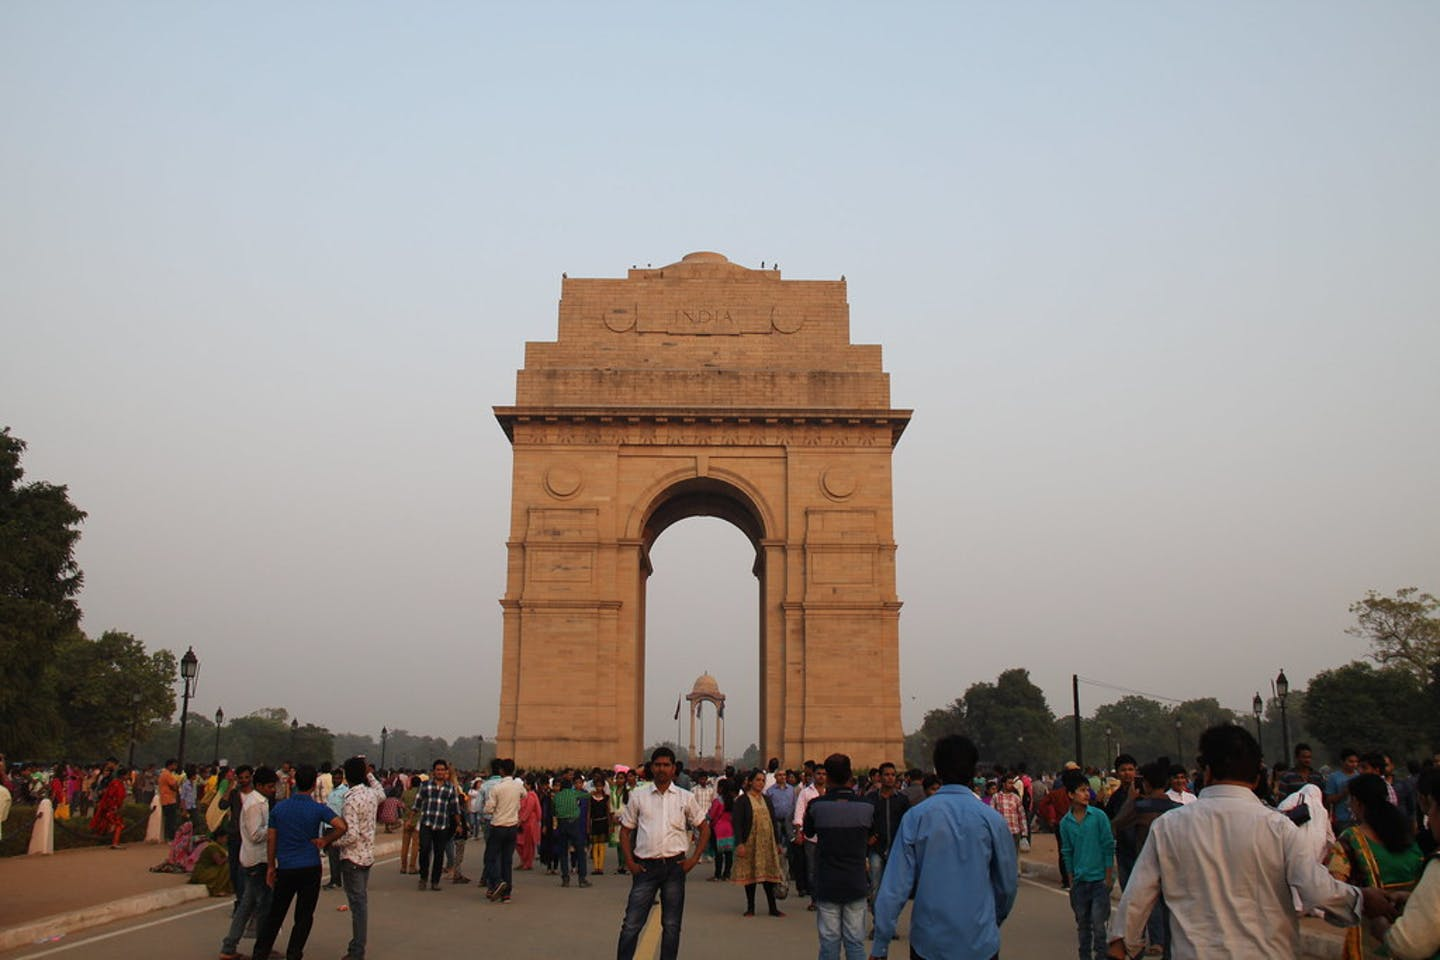 India Gate war memorial in New Delhi, India